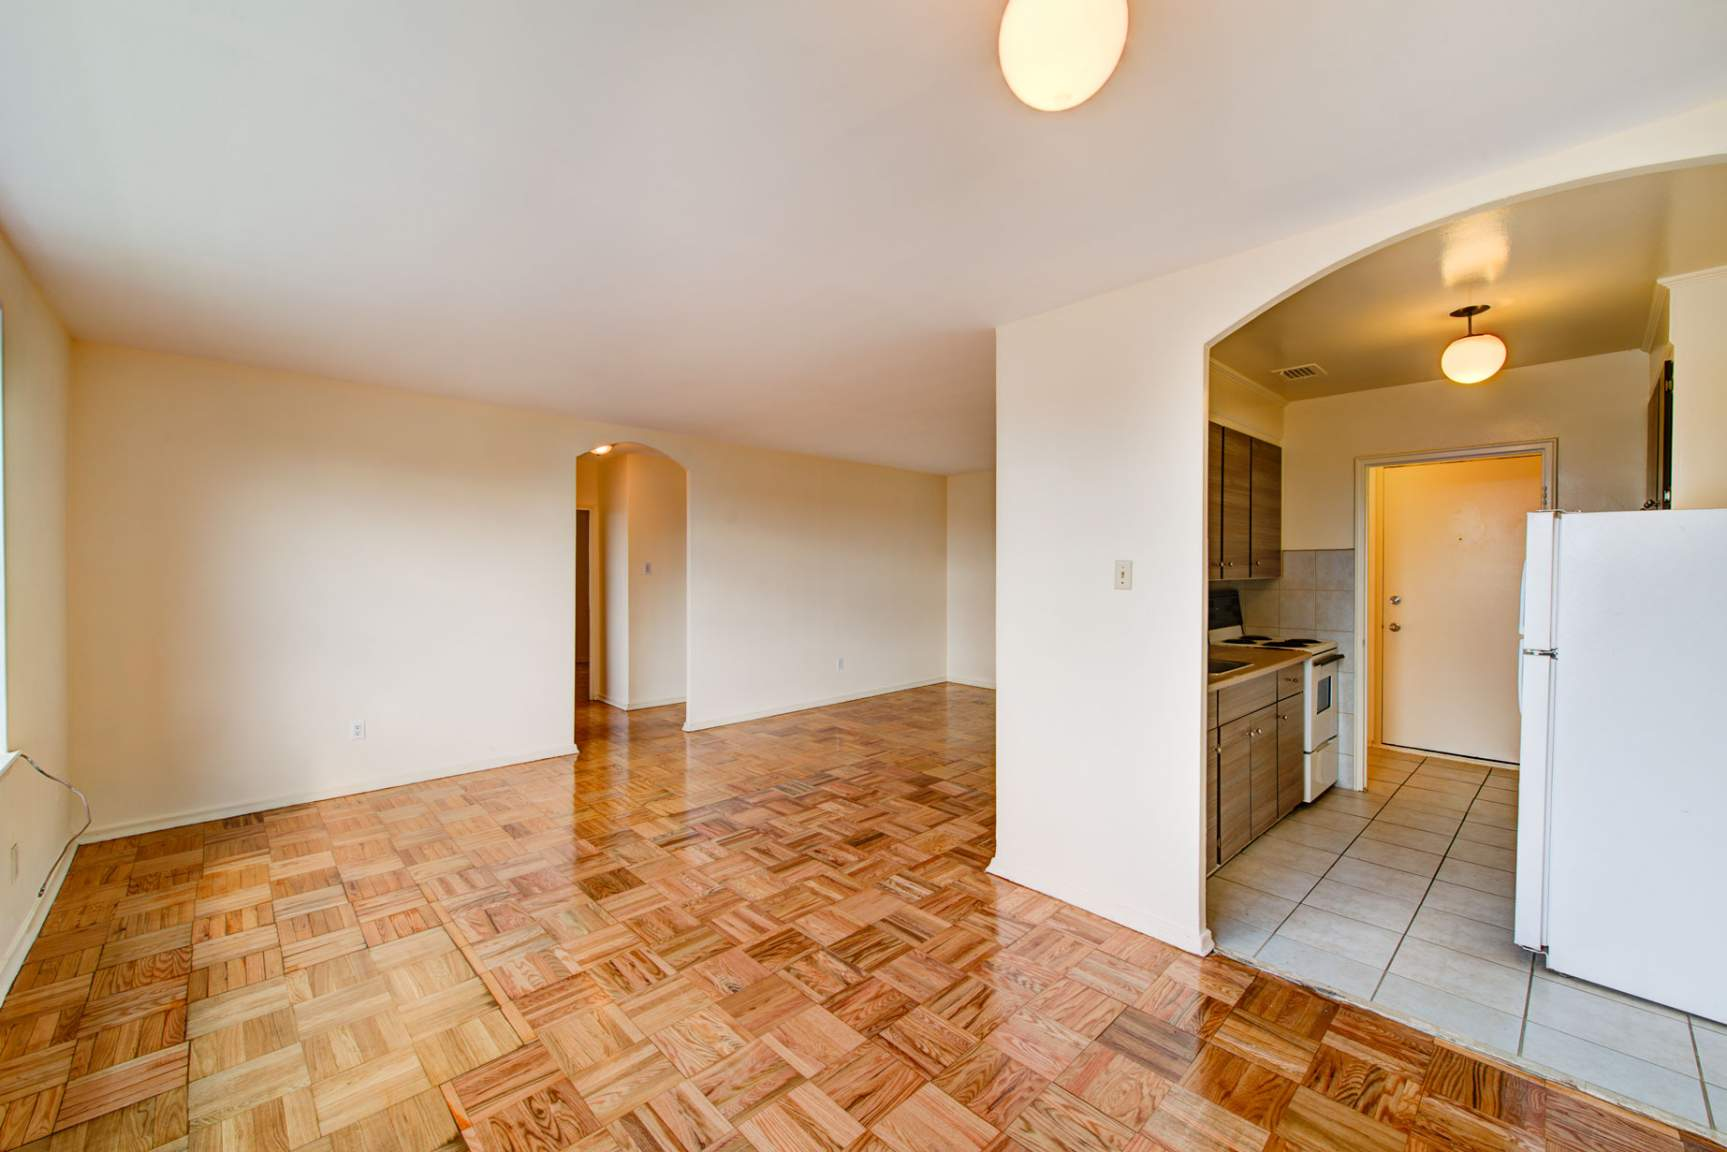 1 bedroom Apartments for rent in Toronto at Faywood - Vinci Community - Photo 08 - RentersPages – L402215